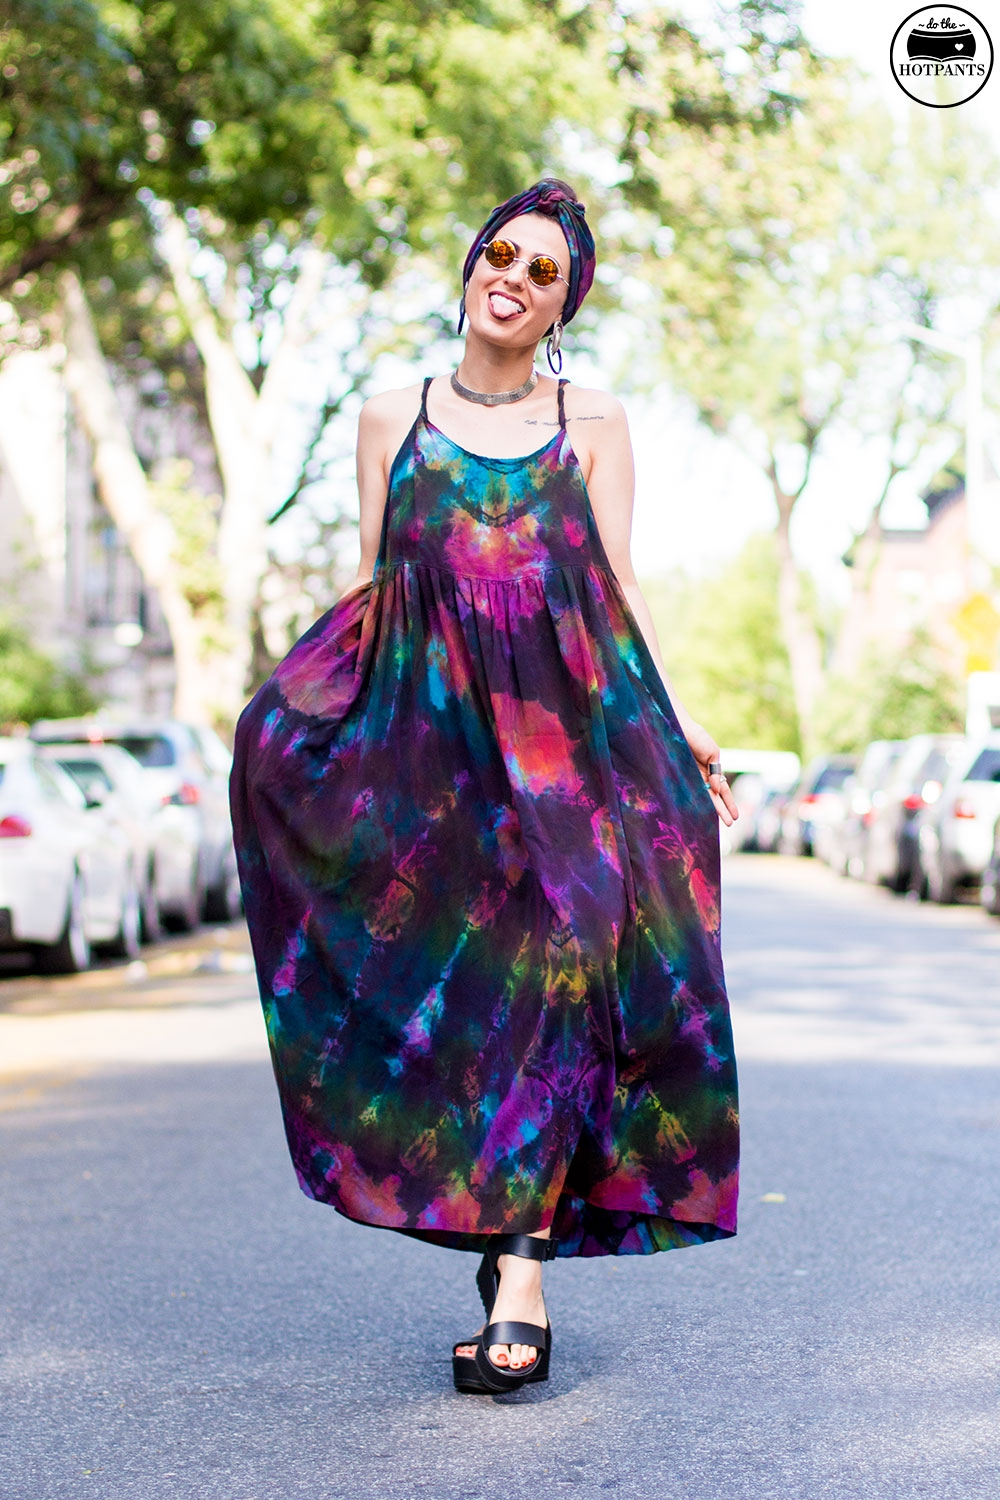 Do The Hotpants Dana Suchow Tie Dye Dress Maxi Flowy Summer Dress Tiedye Headwrap Turban Fashion IMG_9721